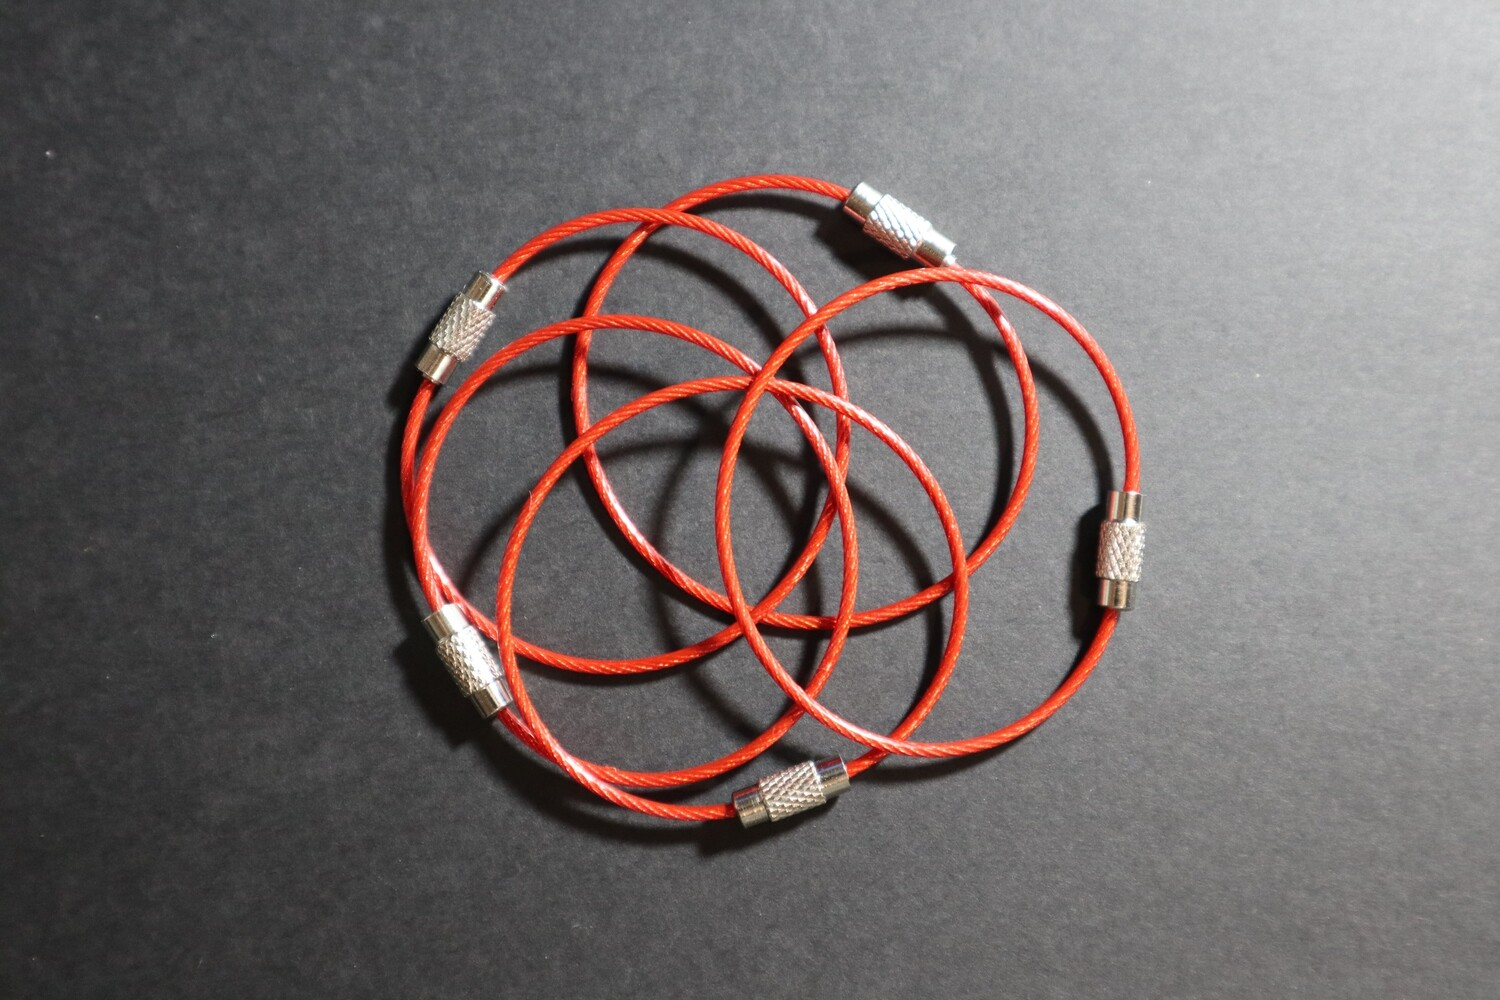 Cable Storage Ring 15cm - Red